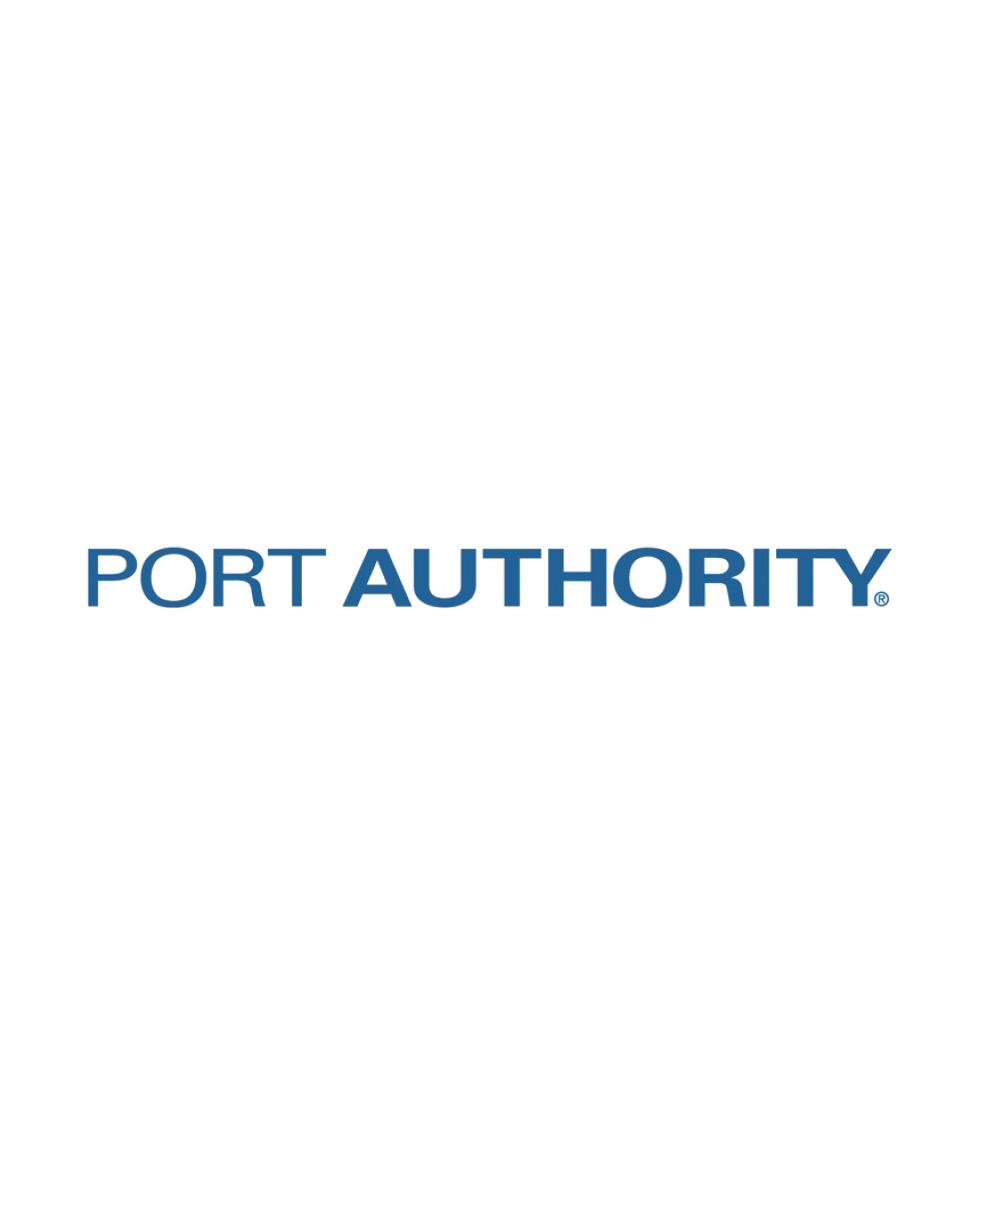 Promo Logos - Port Authority.jpg